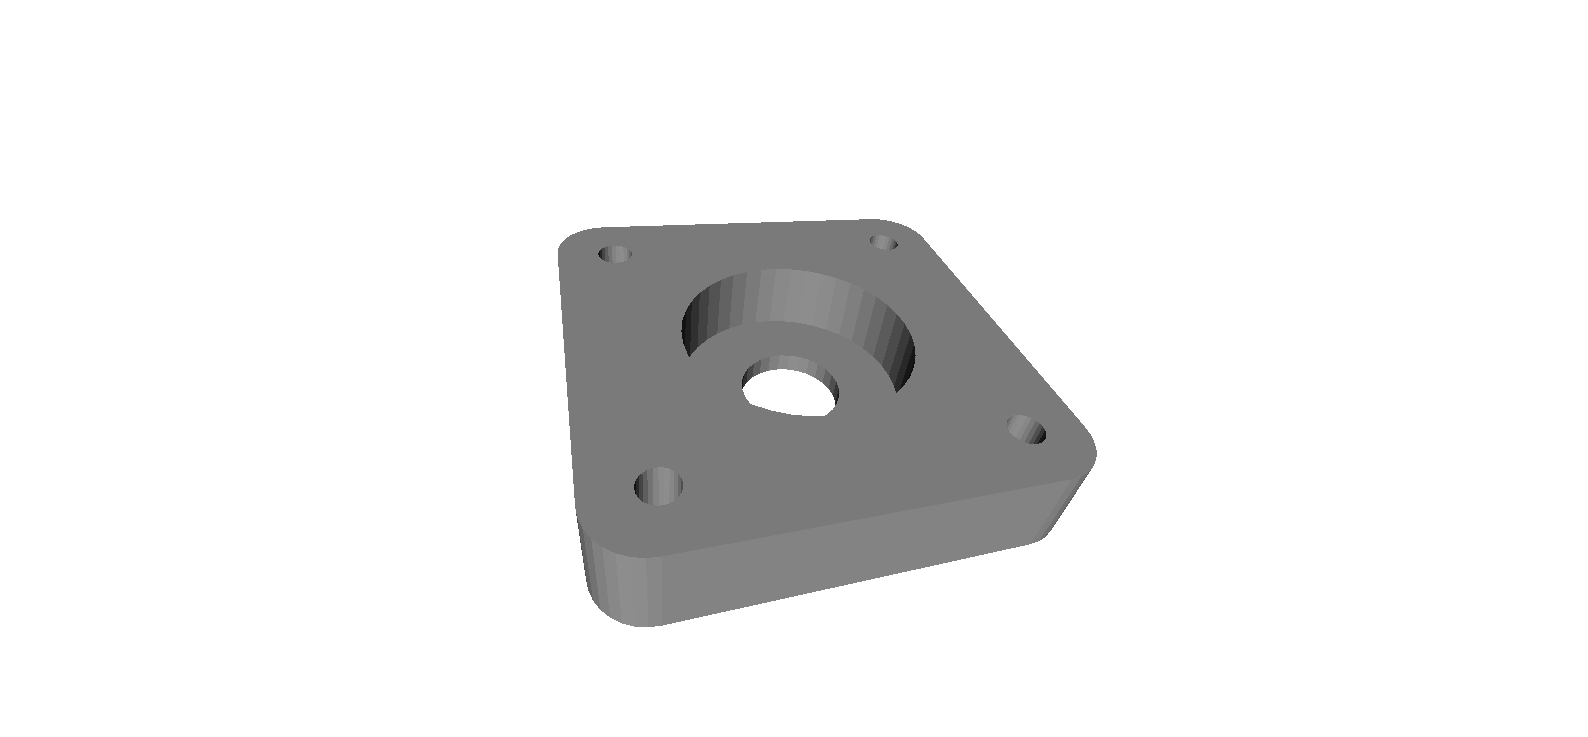 linear model/freecad/STLs/bearing constrainer.png